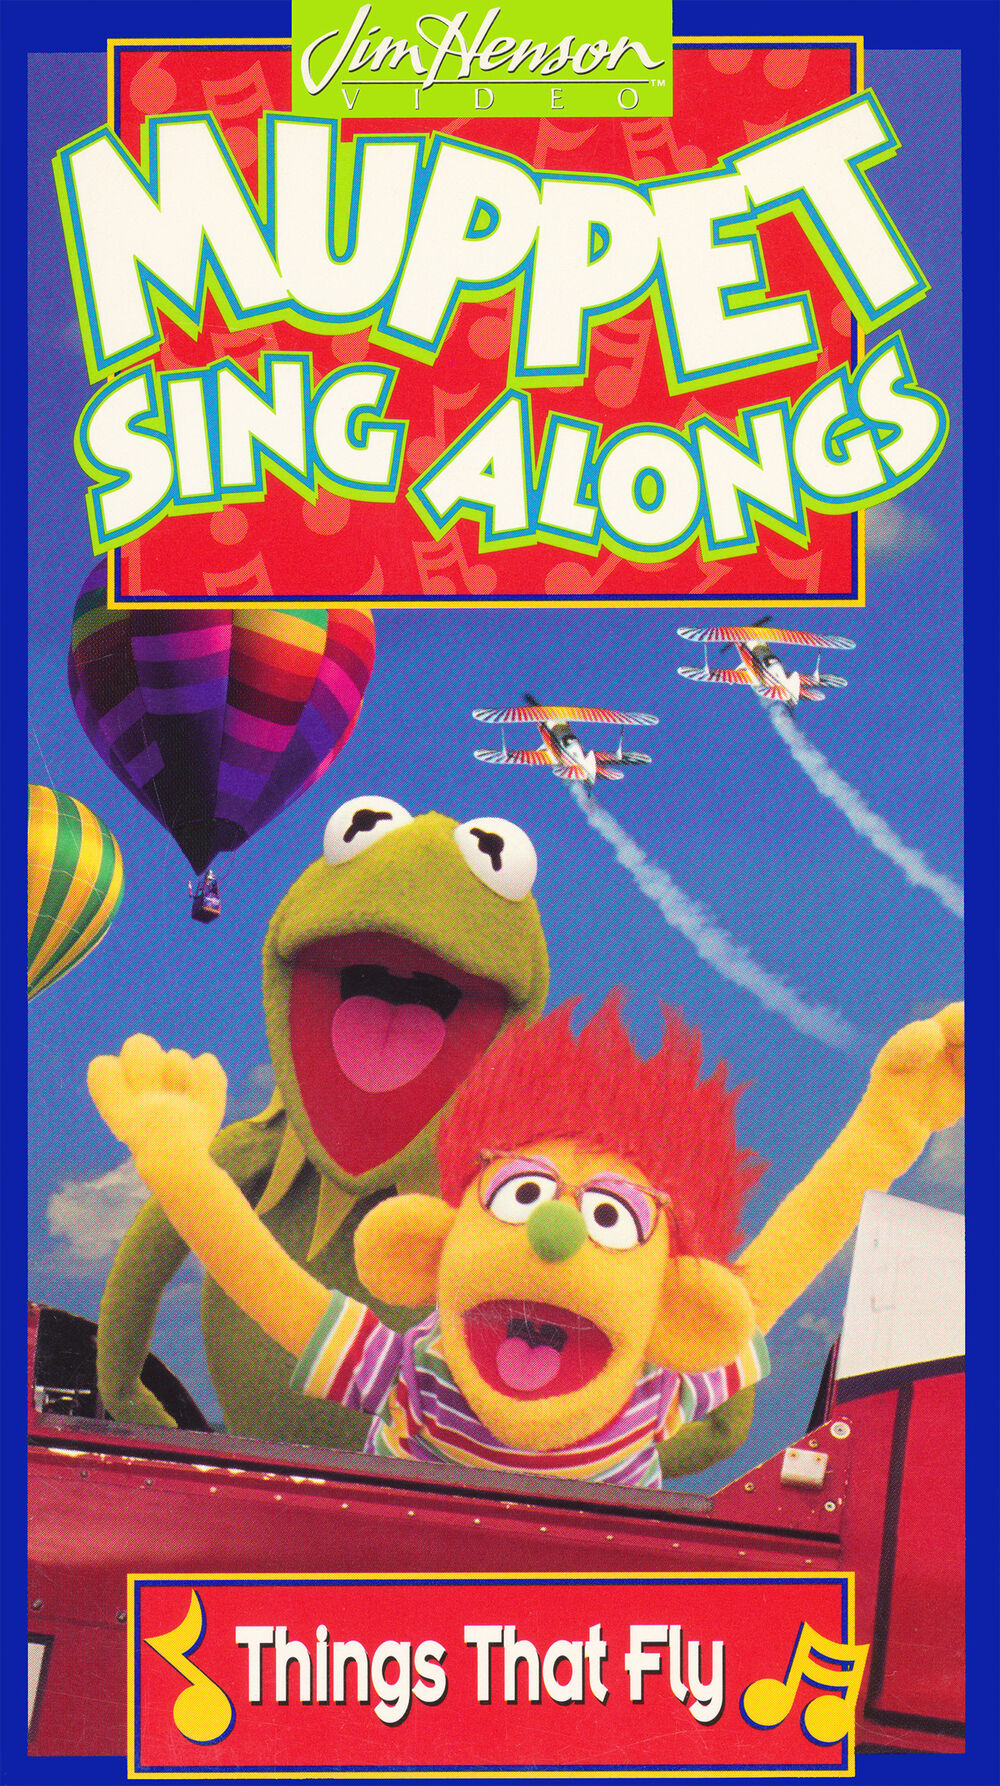 Muppet Sing Alongs: Things That Fly! (1996 VHS)